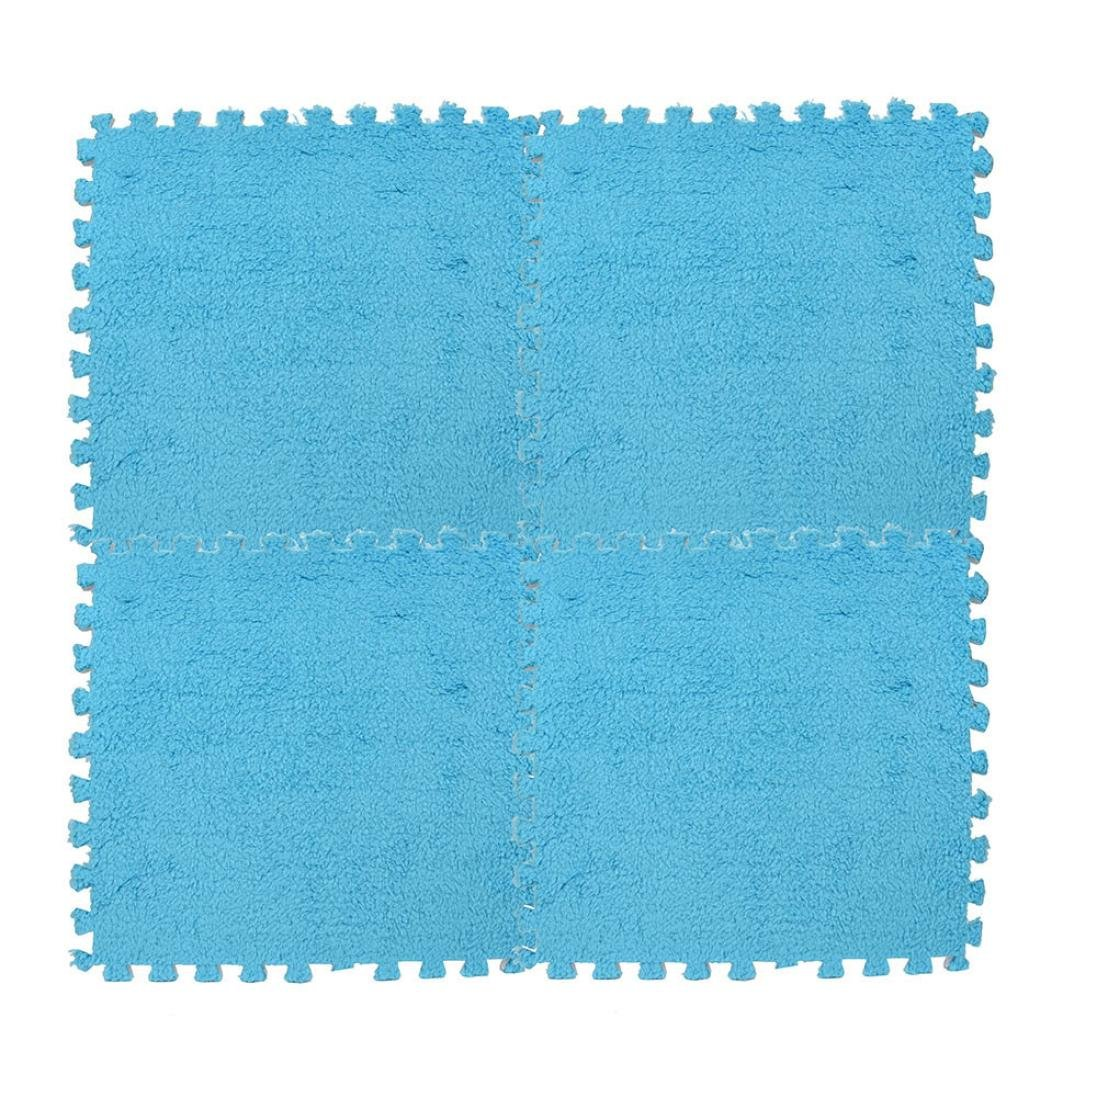 Sameno 3030cm Kids Carpet Peel and Stick Square Assorted Carpet Tile Foam Puzzle EVA Mat Shaggy Velvet Baby Eco Floor 7colors (Blue)